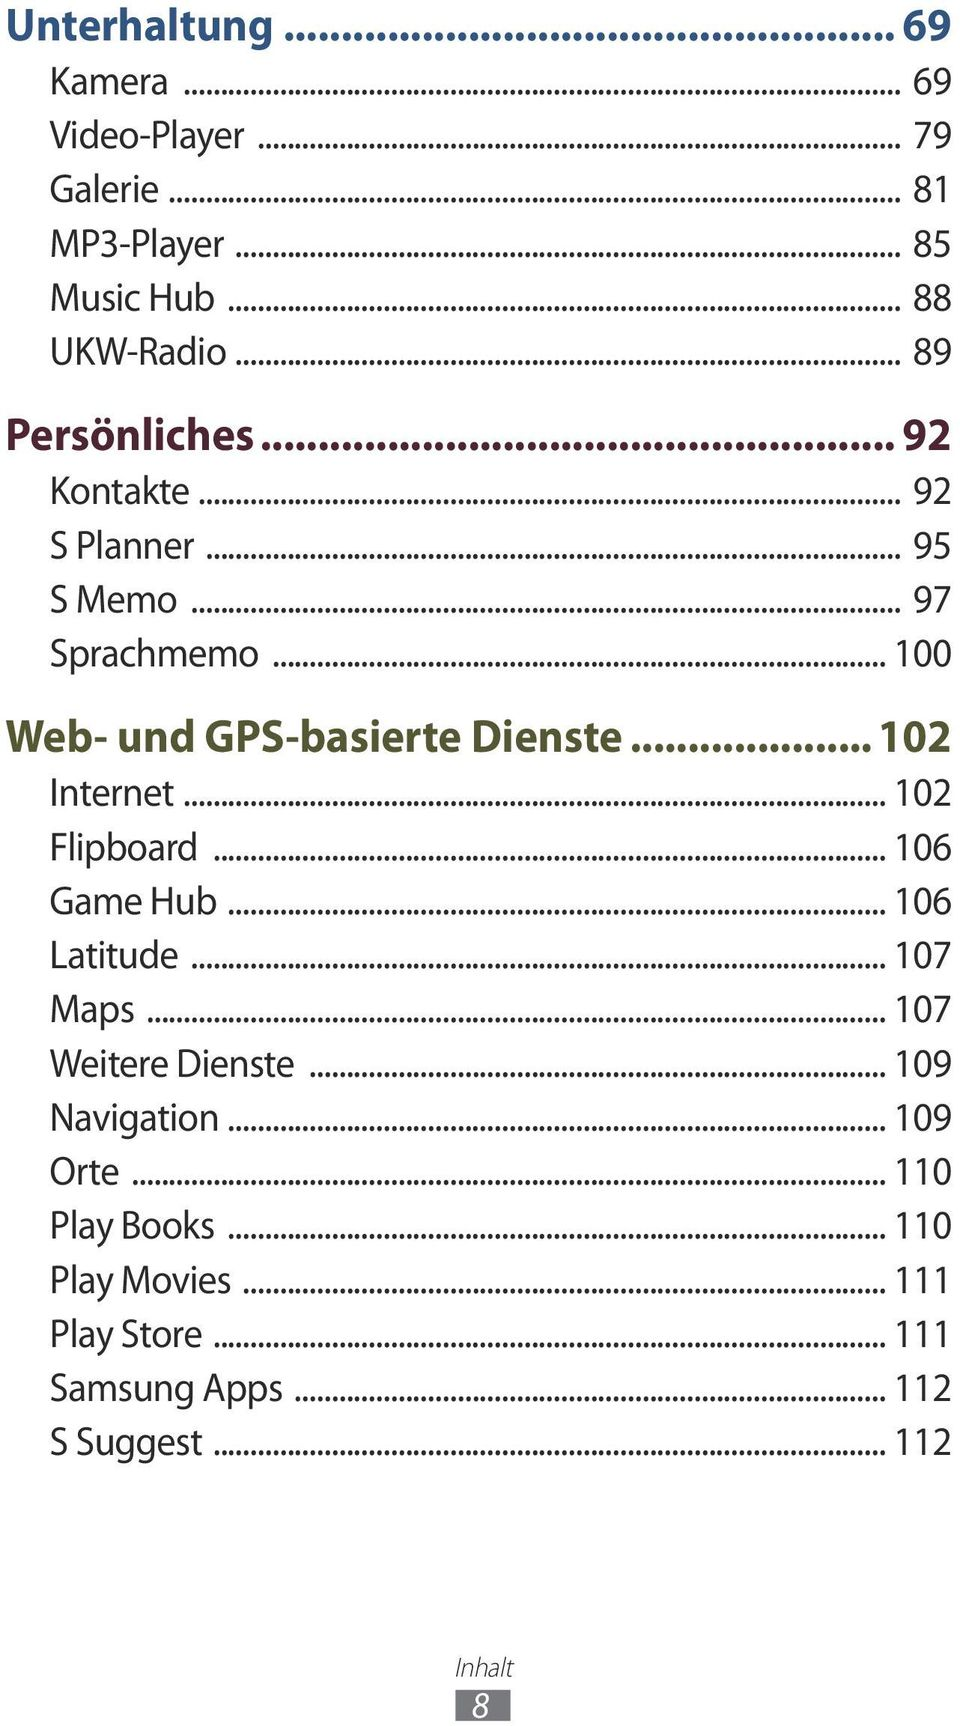 .. 102 Internet... 102 Flipboard... 106 Game Hub... 106 Latitude... 107 Maps... 107 Weitere Dienste... 109 Navigation.